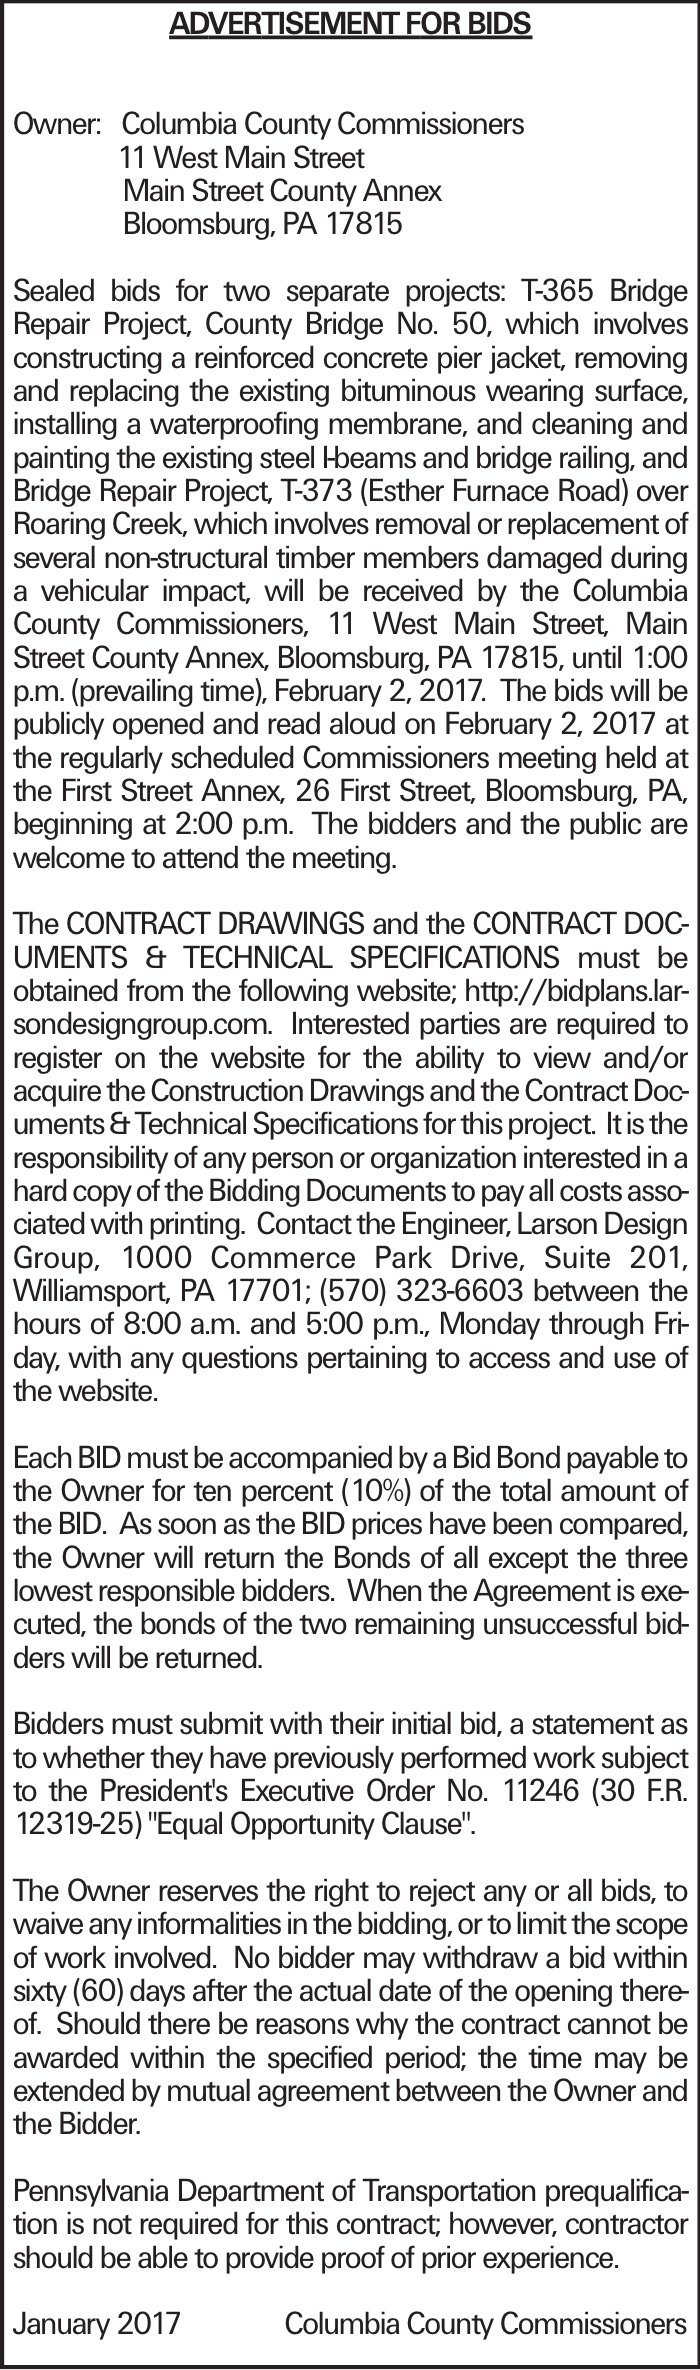 ADVERTISEMENT FOR BIDS Owner:Columbia County Commissioners 11 West Main Street Main Street County Annex Bloomsburg, PA 17815 Sealed bids for two separate projects: T-365 Bridge Repair Project, County Bridge No. 50, which involves constructing a reinforced concrete pier jacket, removing and replacing the existing bituminous wearing surface, installing a waterproofing membrane, and cleaning and painting the existing steel I-beams and bridge railing, and Bridge Repair Project, T-373 (Esther Furnace Road) over Roaring Creek, which involves removal or replacement of several non-structural timber members damaged during a vehicular impact, will be received by the Columbia County Commissioners, 11 West Main Street, Main Street County Annex, Bloomsburg, PA 17815, until 1:00 p.m. (prevailing time), February 2, 2017. The bids will be publicly opened and read aloud on February 2, 2017 at the regularly scheduled Commissioners meeting held at the First Street Annex, 26 First Street, Bloomsburg, PA, beginning at 2:00 p.m. The bidders and the public are welcome to attend the meeting. The CONTRACT DRAWINGS and the CONTRACT DOCUMENTS & TECHNICAL SPECIFICATIONS must be obtained from the following website; http://bidplans.larsondesigngroup.com. Interested parties are required to register on the website for the ability to view and/or acquire the Construction Drawings and the Contract Documents & Technical Specifications for this project. It is the responsibility of any person or organization interested in a hard copy of the Bidding Documents to pay all costs associated with printing. Contact the Engineer, Larson Design Group, 1000 Commerce Park Drive, Suite 201, Williamsport, PA 17701; (570) 323-6603 between the hours of 8:00 a.m. and 5:00 p.m., Monday through Friday, with any questions pertaining to access and use of the website. Each BID must be accompanied by a Bid Bond payable to the Owner for ten percent (10%) of the total amount of the BID. As soon as the BID prices have been comp